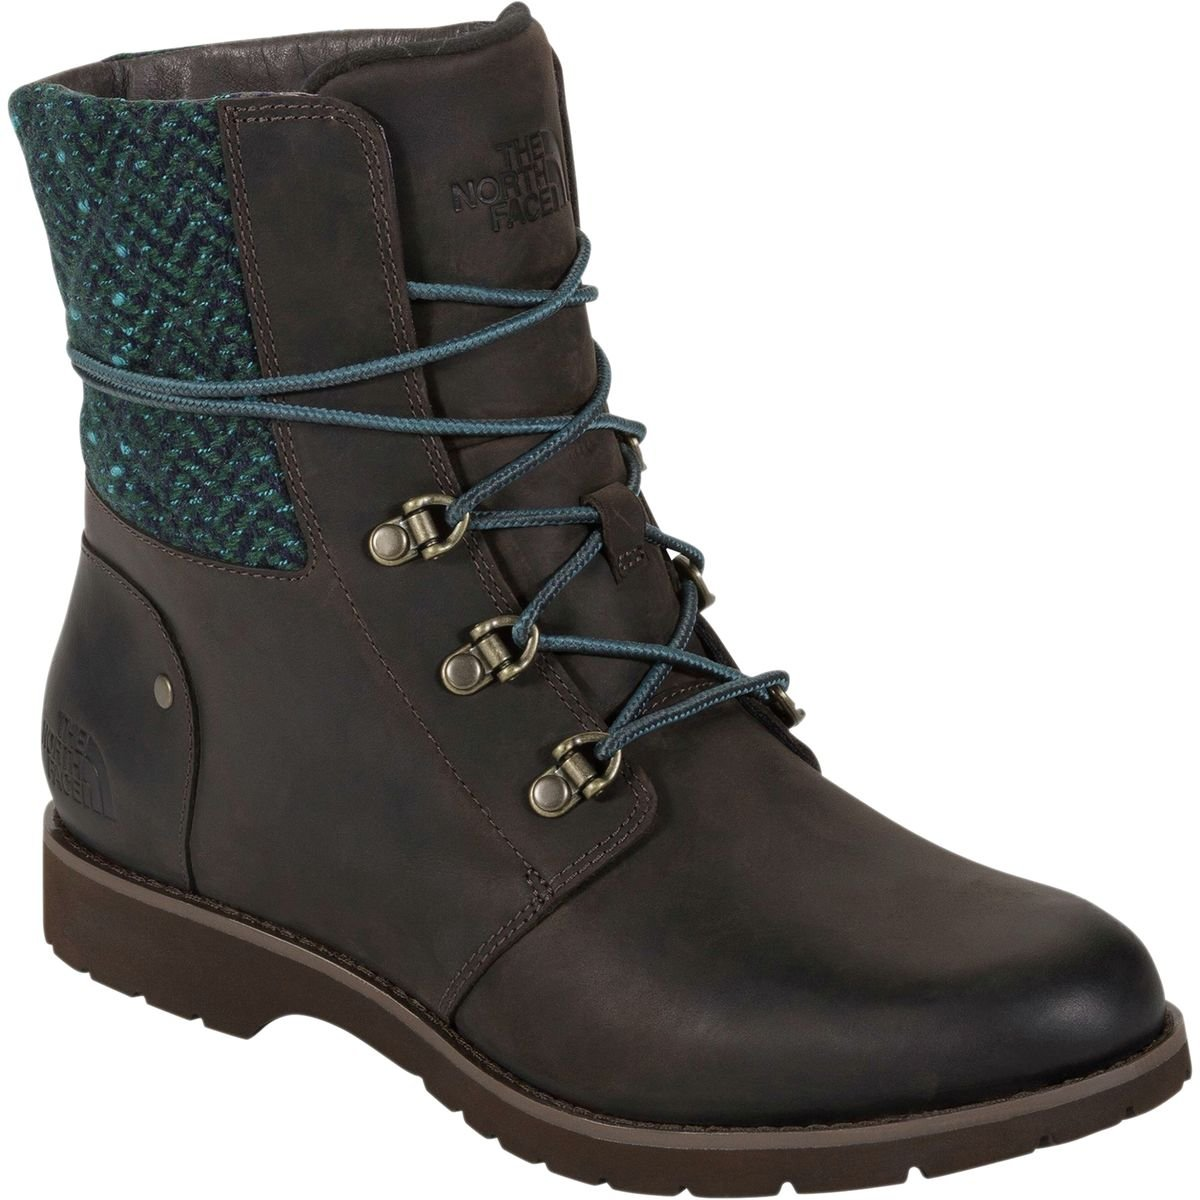 The North Face Women's Ballard Lace Up Boot B00RW5DVPW 10.5 B(M) US|Coffee Brown/Blue Green/Tweed (Prior Season)